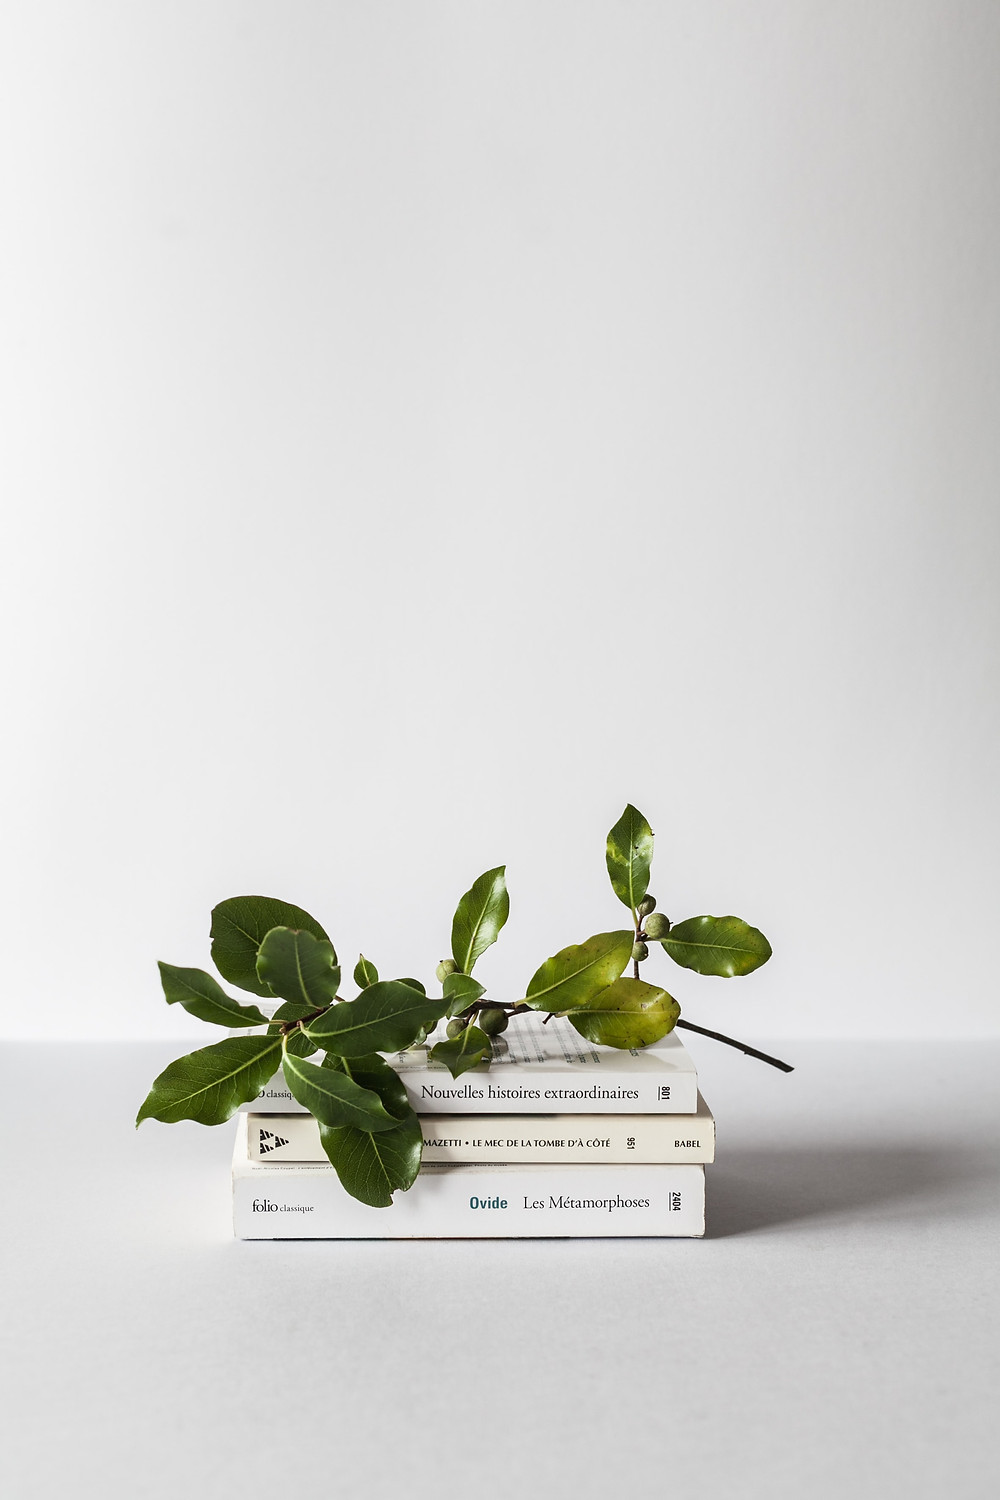 Read up on sustainability through books and social media